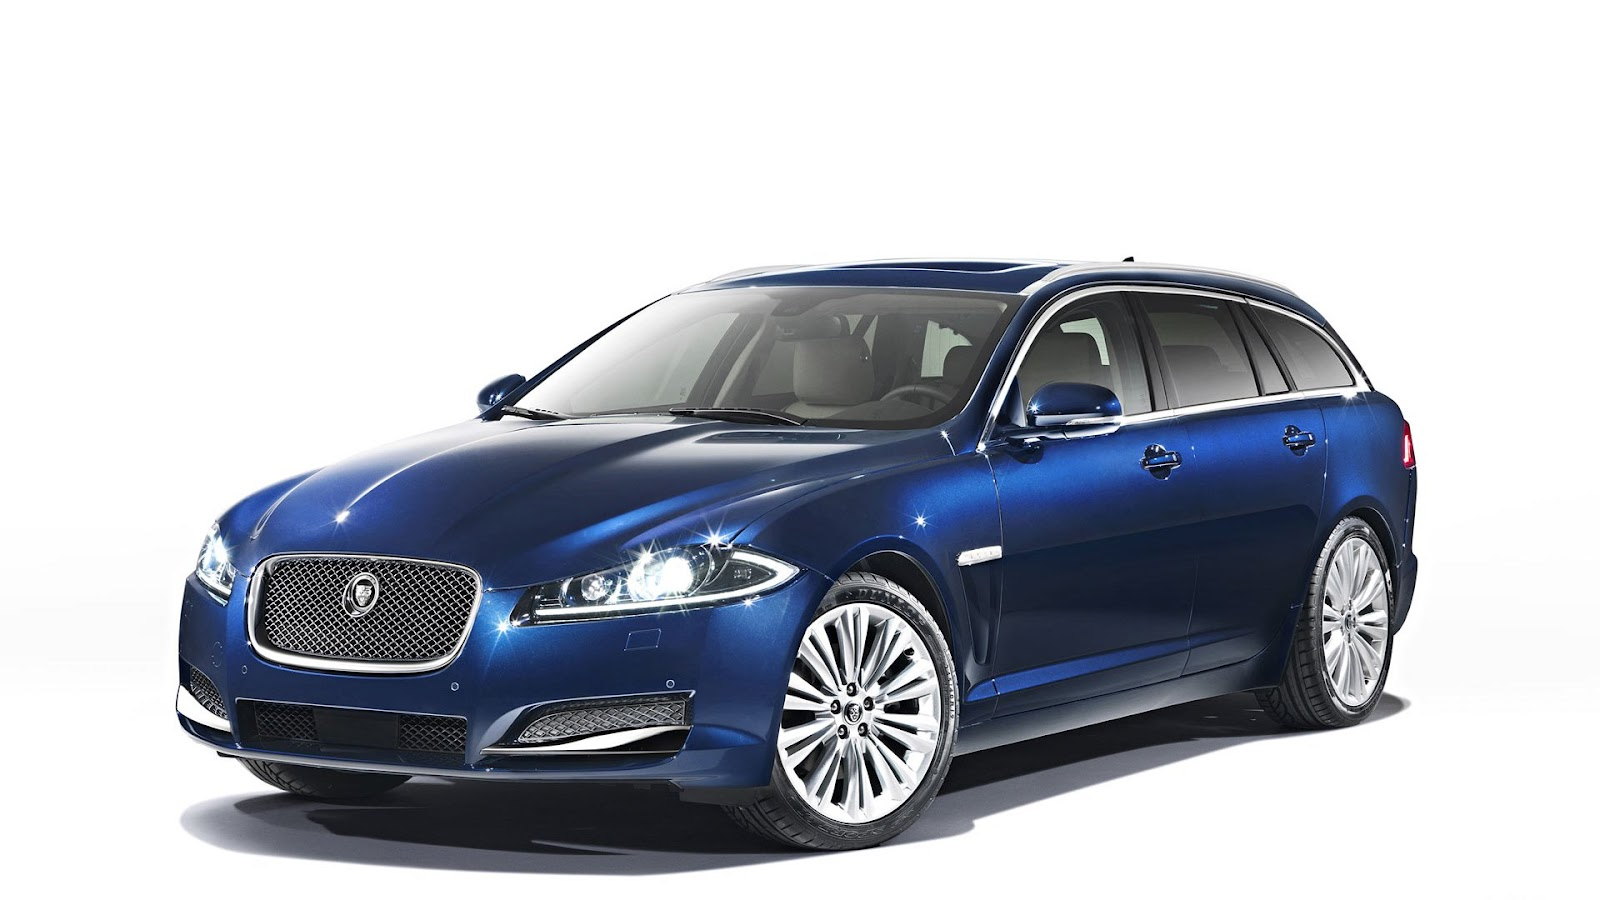 2013 jaguar xf sportbrake free full hd car wallpaper. Black Bedroom Furniture Sets. Home Design Ideas